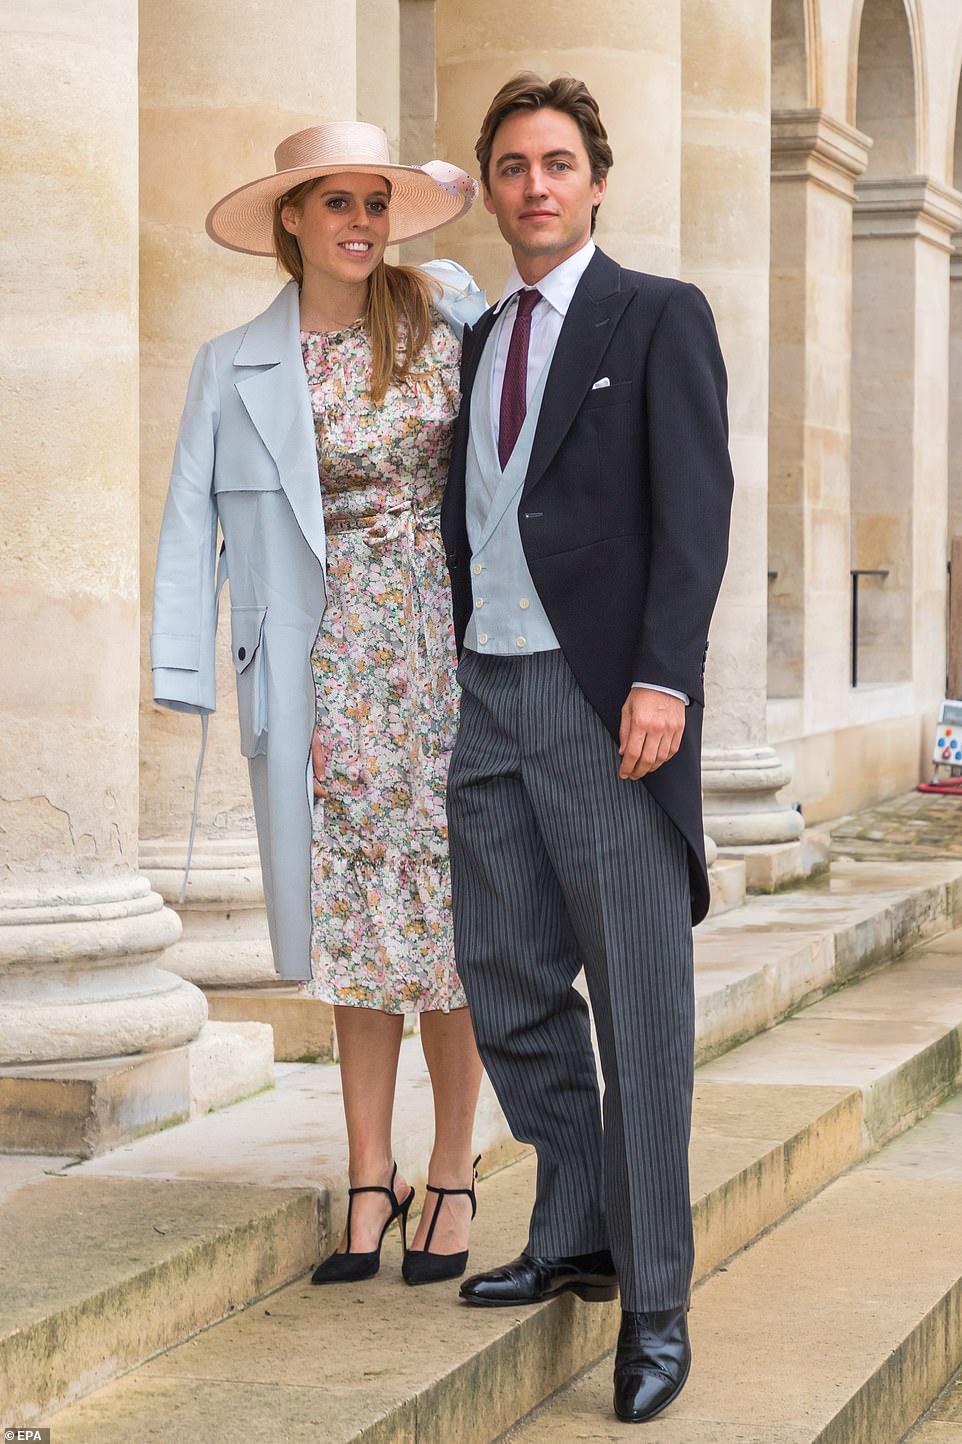 Princess Beatrice of York (L) and her husband Edoardo Mapelli Mozzi, will be attending the funeral at Windsor on Saturday